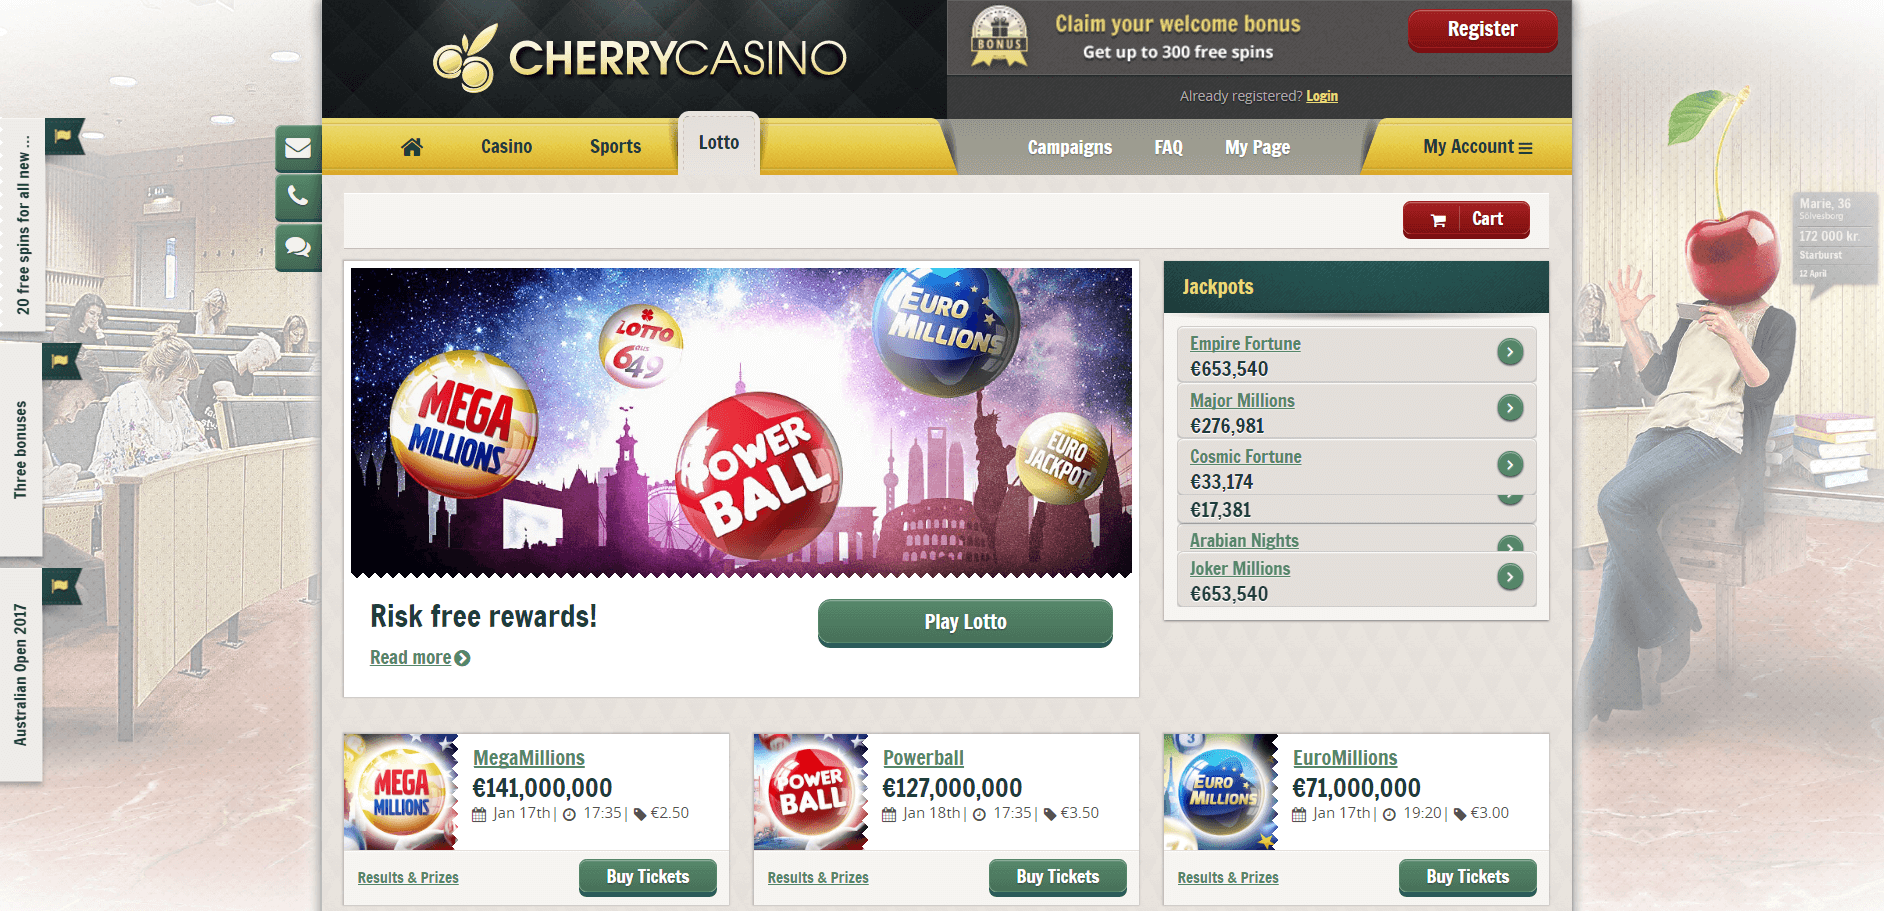 An image of the Cherry Casino Website lotto page